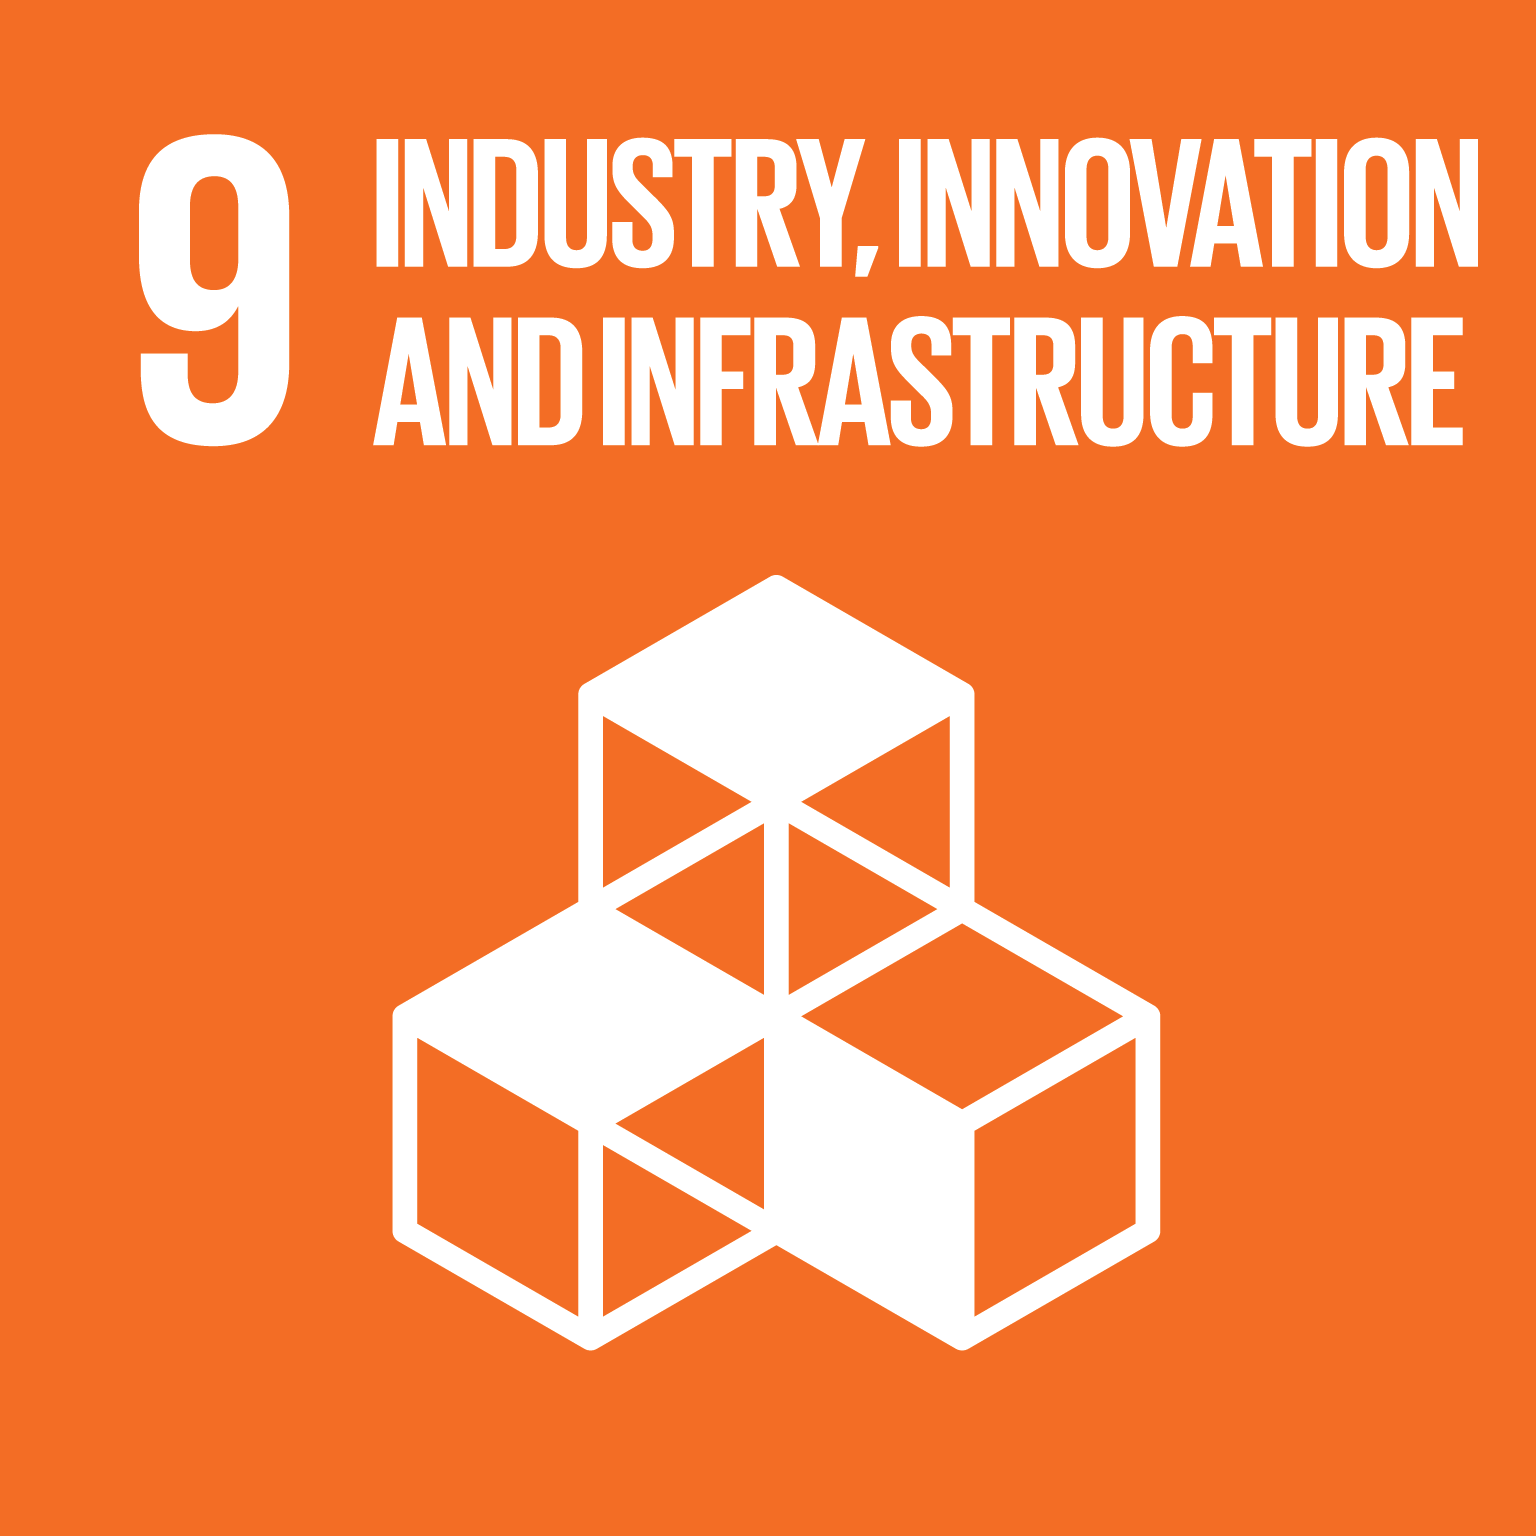 SDG Goal 9 'Industry, innovation and infrastructure' © UN